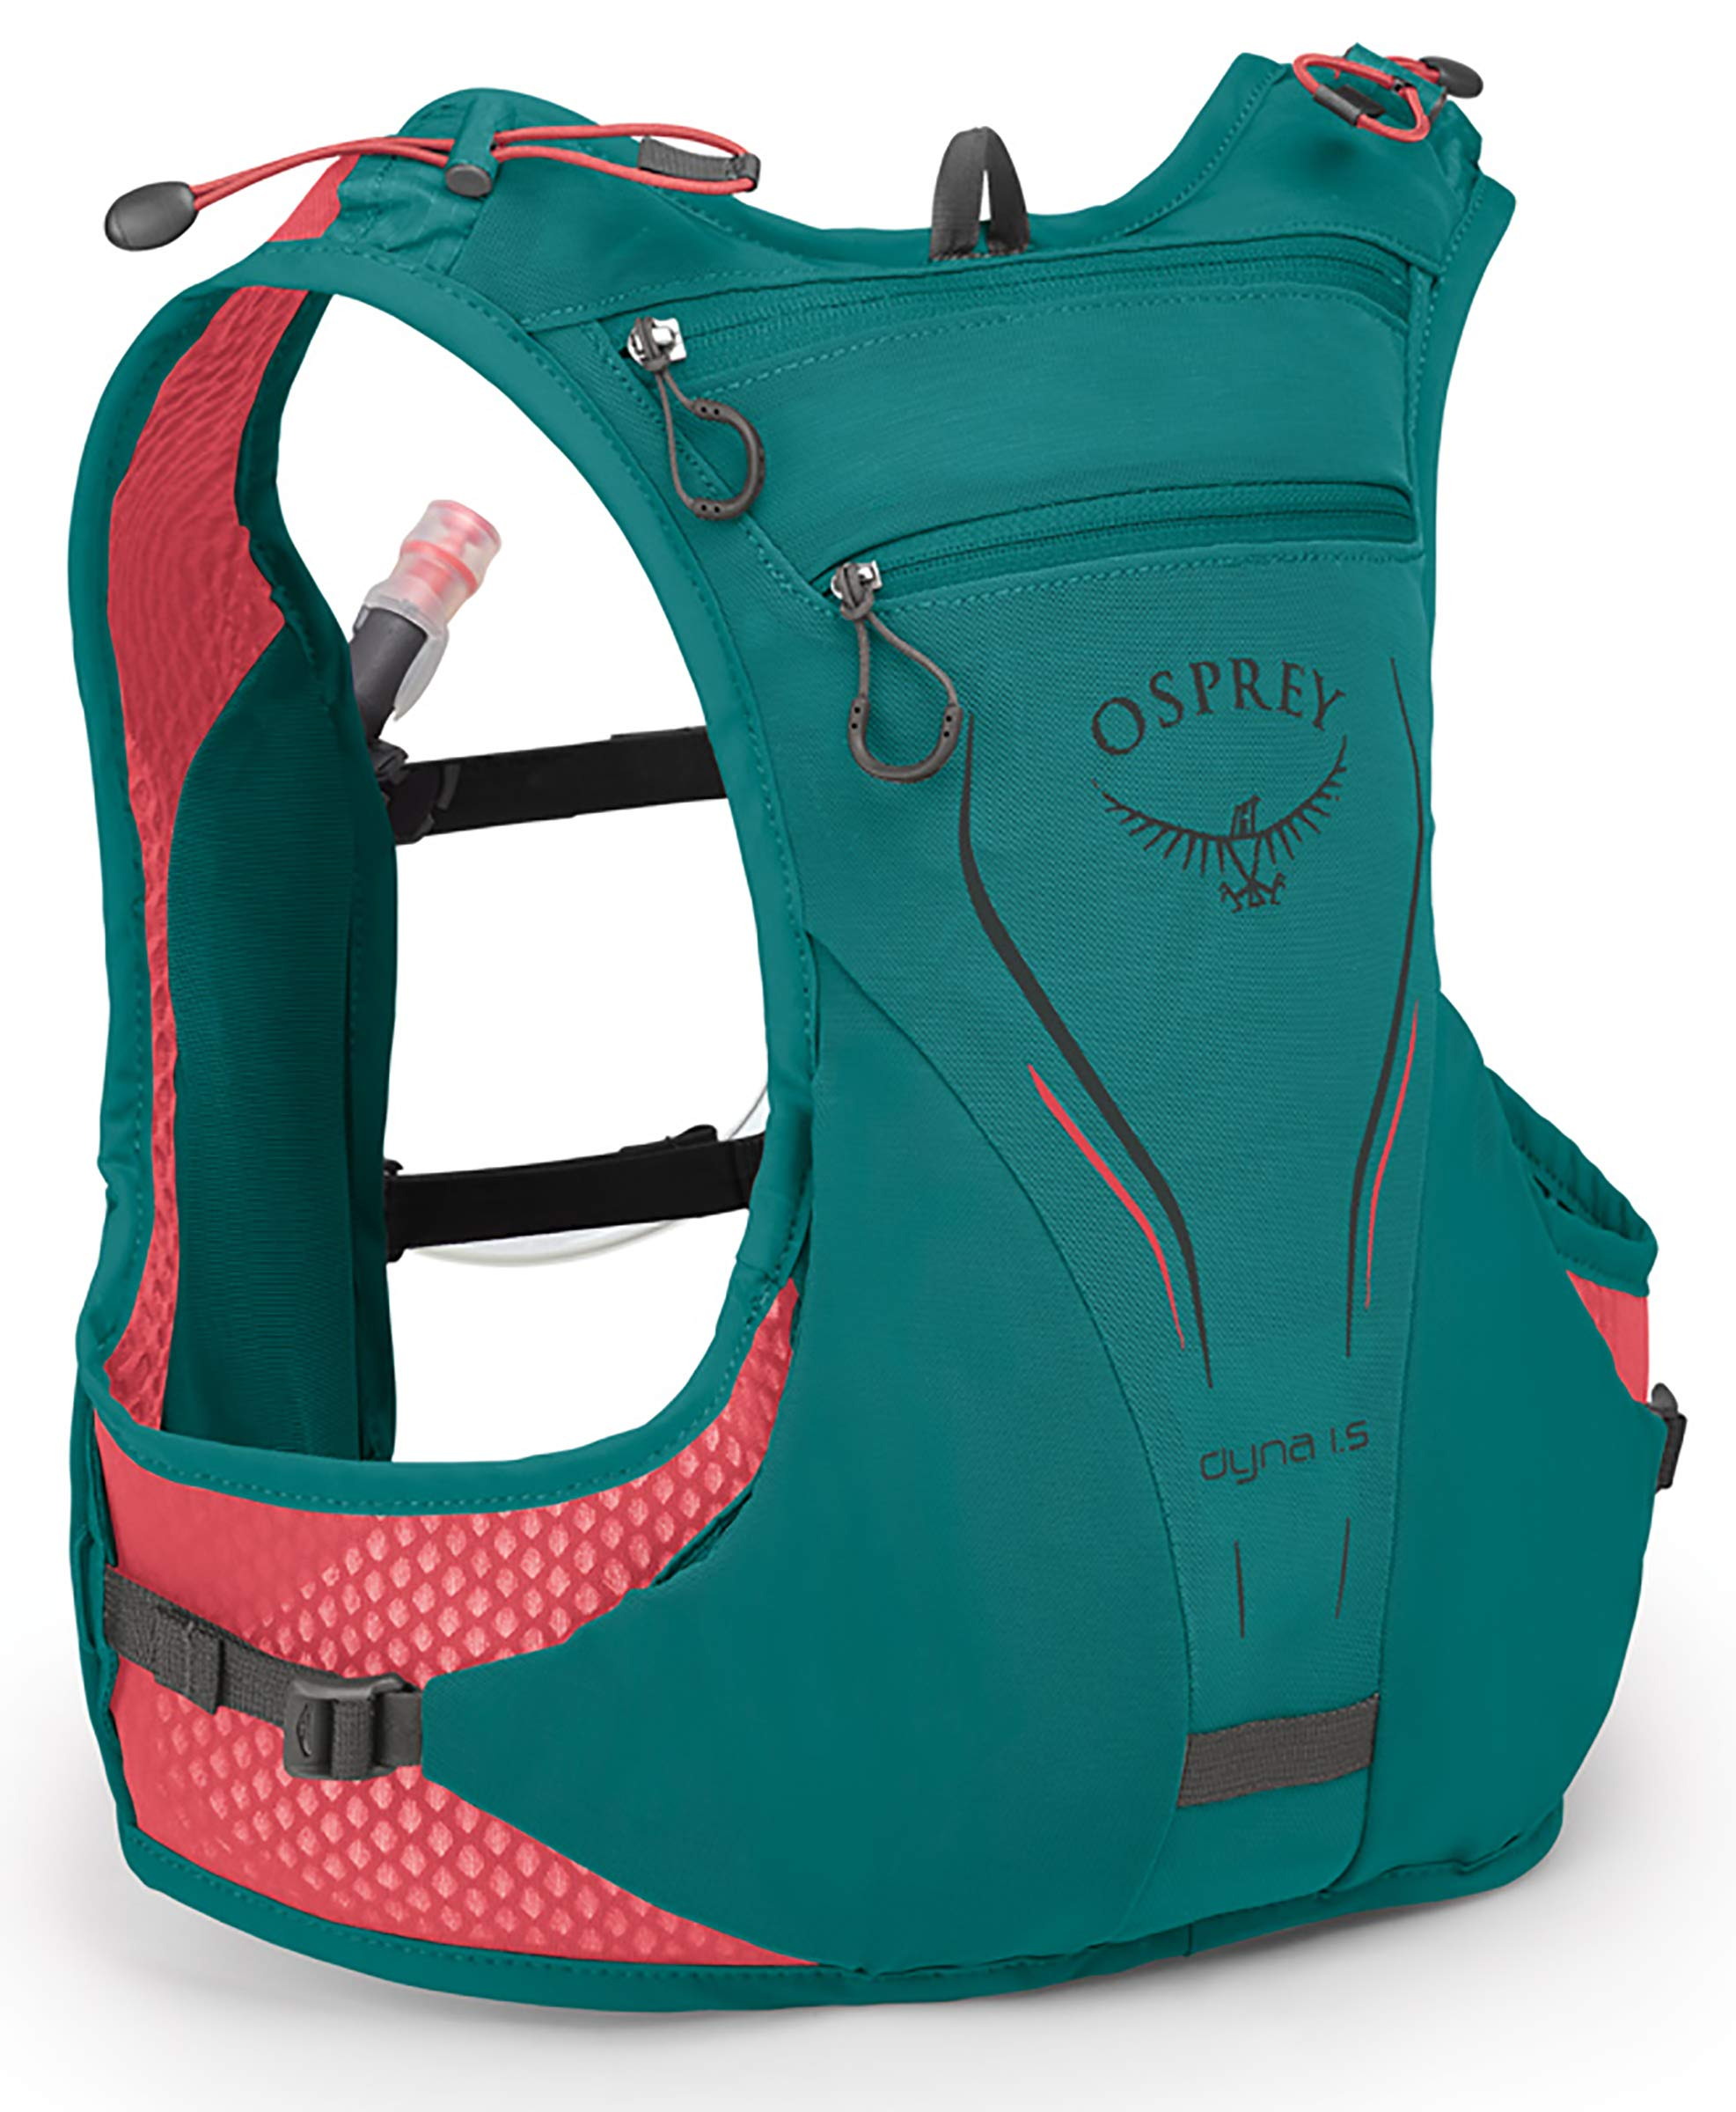 Osprey Packs Dyna 1.5L Women's Running Hydration Vest, Reef Teal, WXS/Small